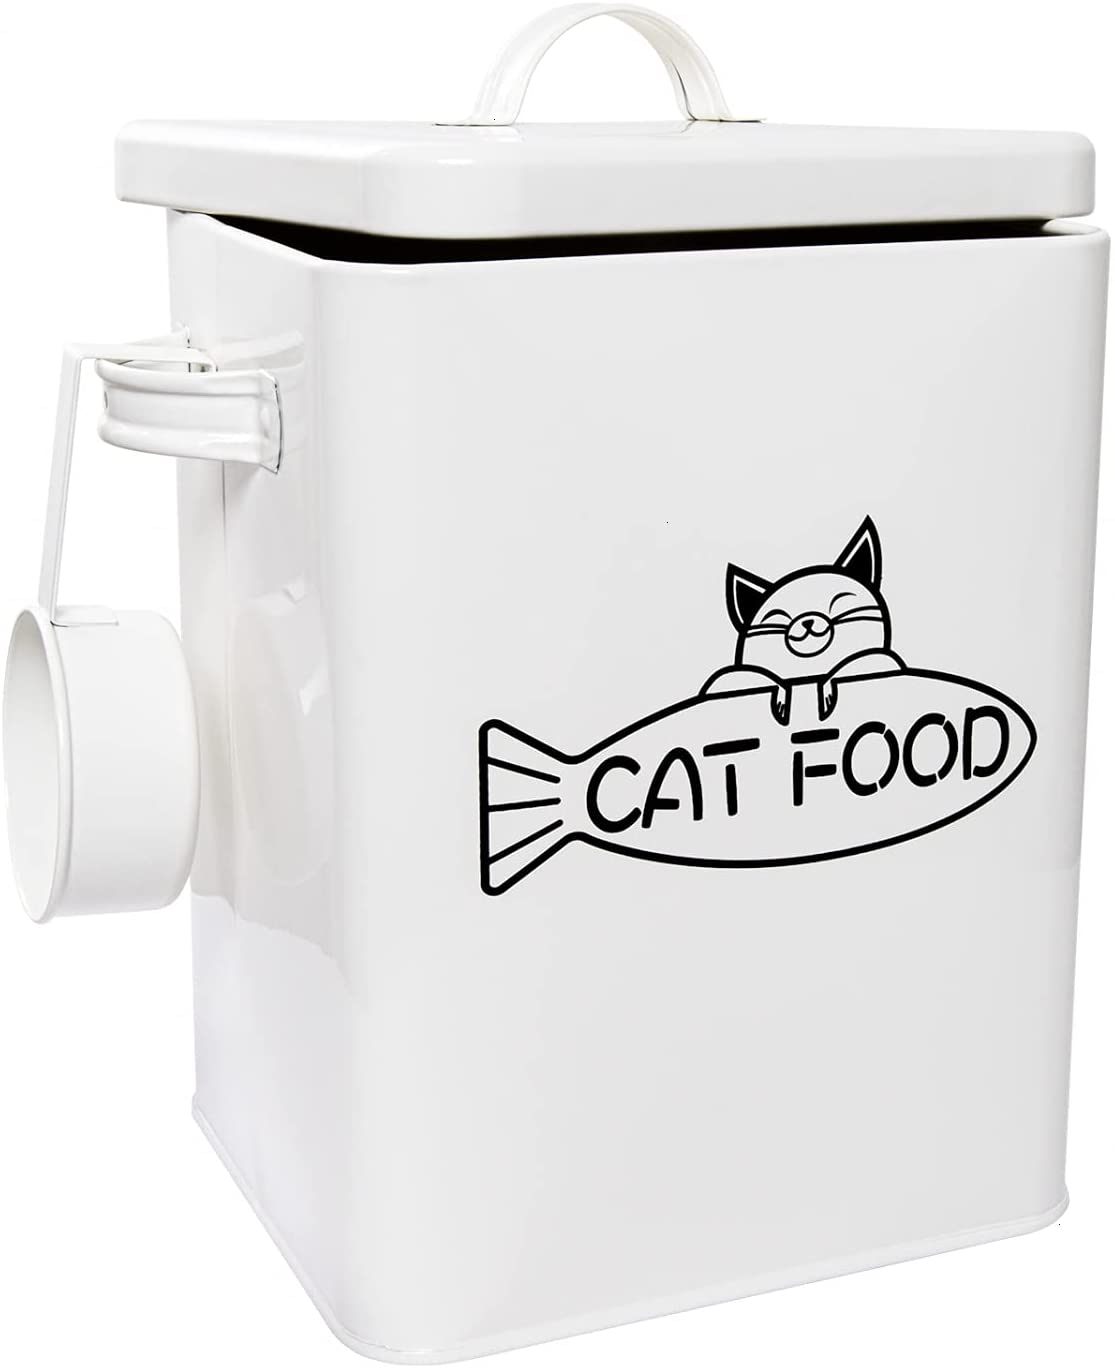 Vumdua Pet Treat and Food Storage Container with Serving Scoop - Farmhouse Cat Food Container with Lid, Airtight Cat Food Storage Container, White